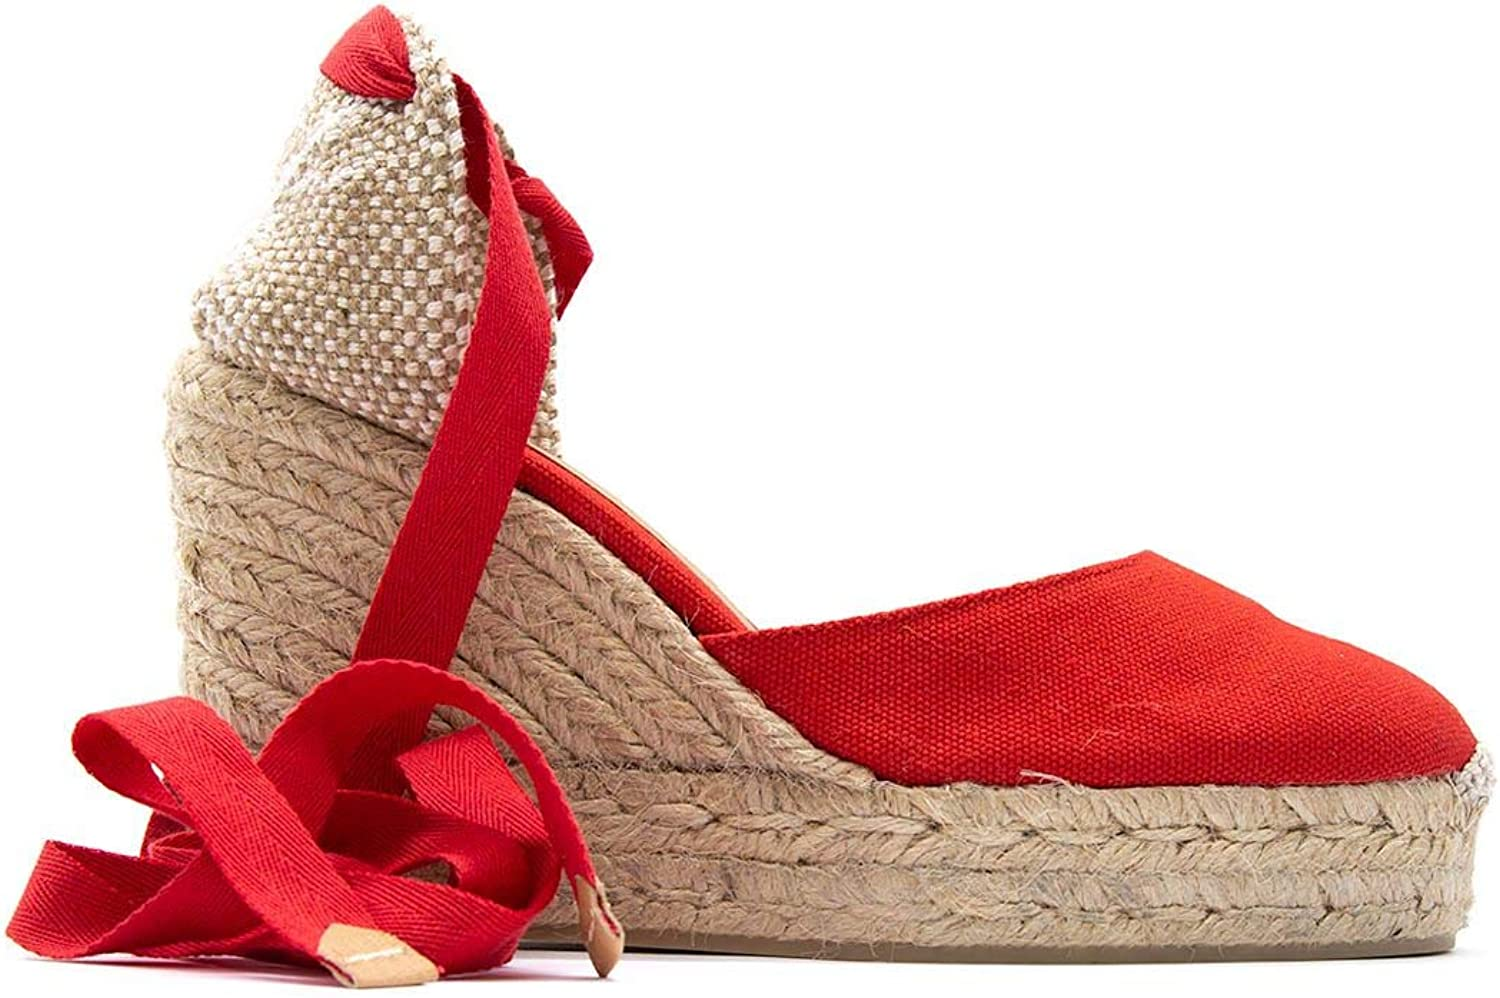 Castaner Women's CARINA502redRUBI Red Other Materials Wedges